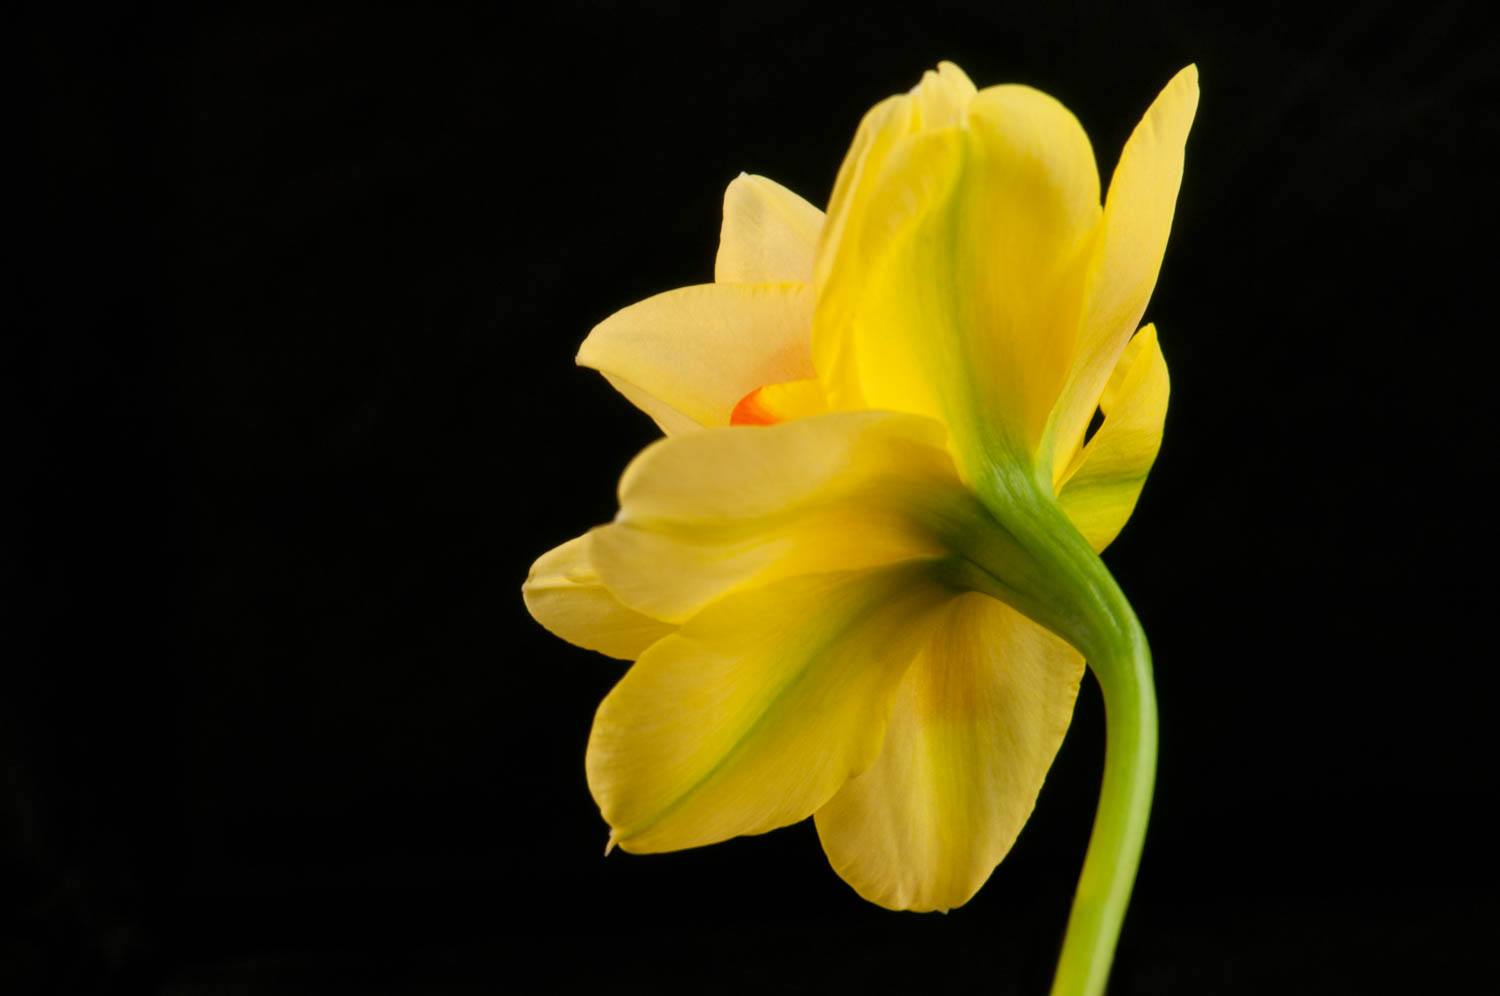 Yellow and Orange Daffodil on Black 2-2.jpg